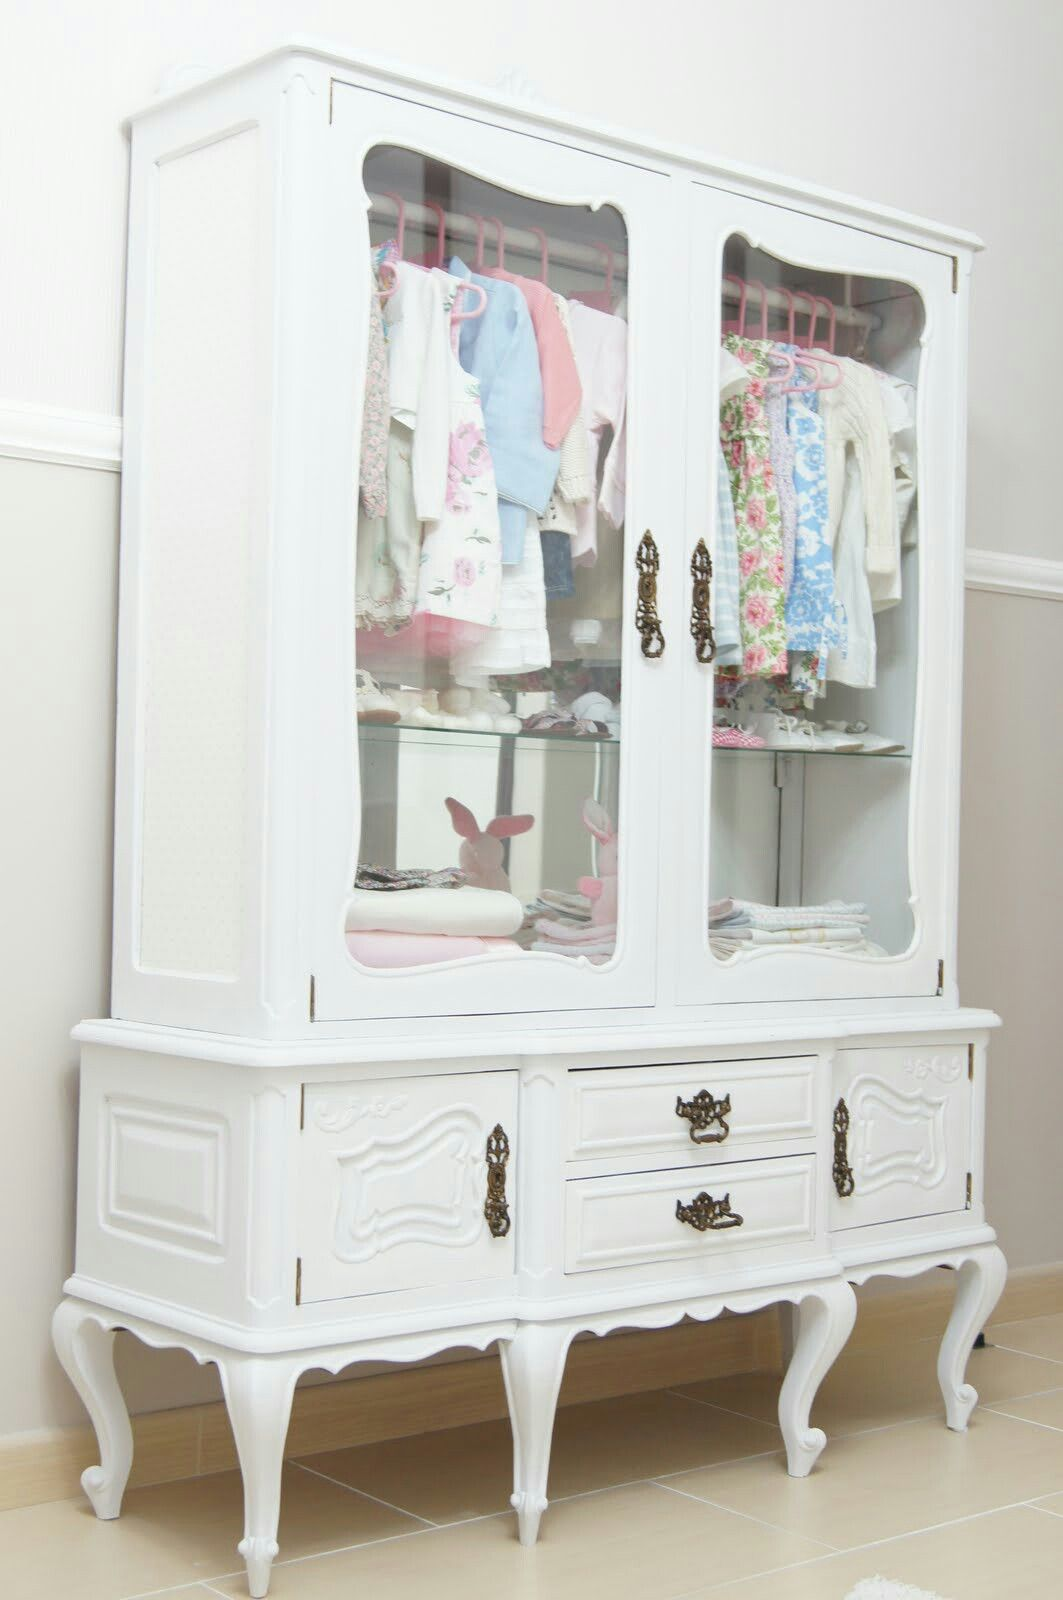 Repurpose A Vintage China Cabinet Into A Little Girlu0027s Clothing Armoire:  Paint A Updated Color + Add Rod For Hanging Clothes   Can Use Optional  Shelves For ...